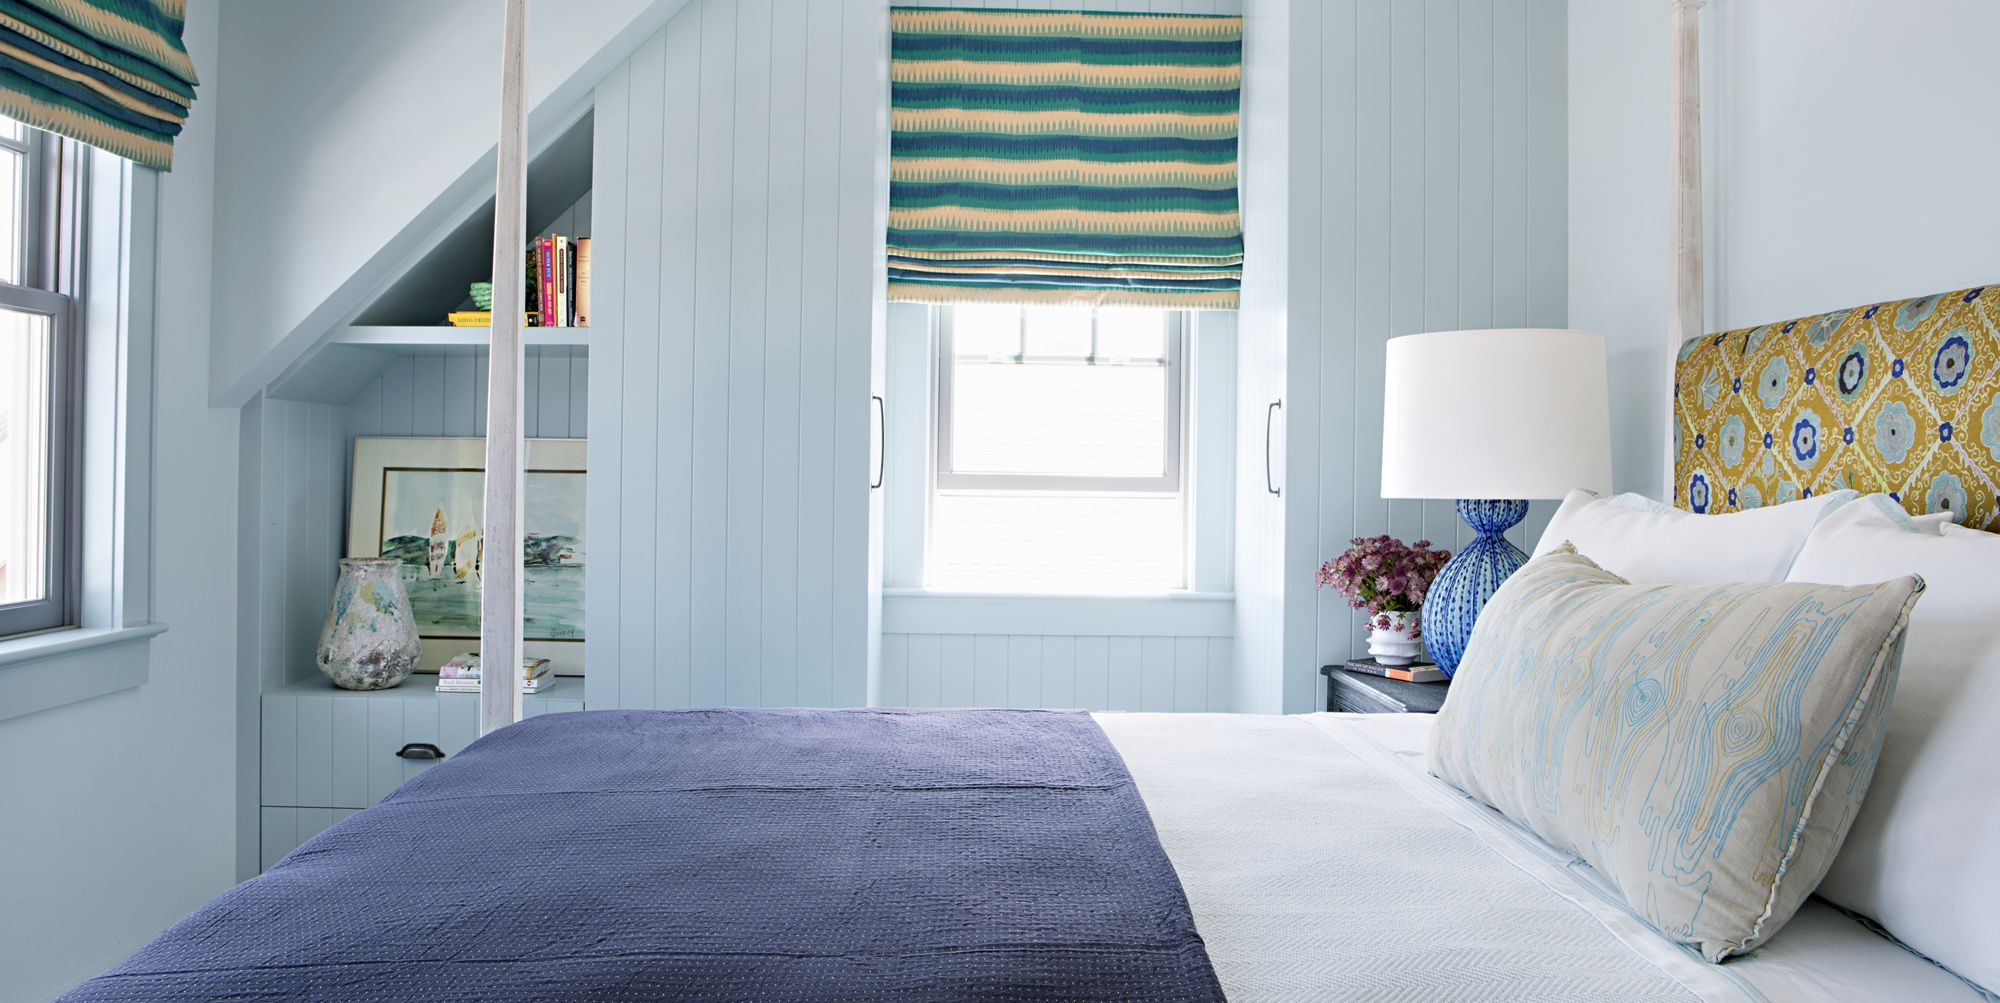 30 Cozy Bedrooms You'll Want to Lounge in All Day